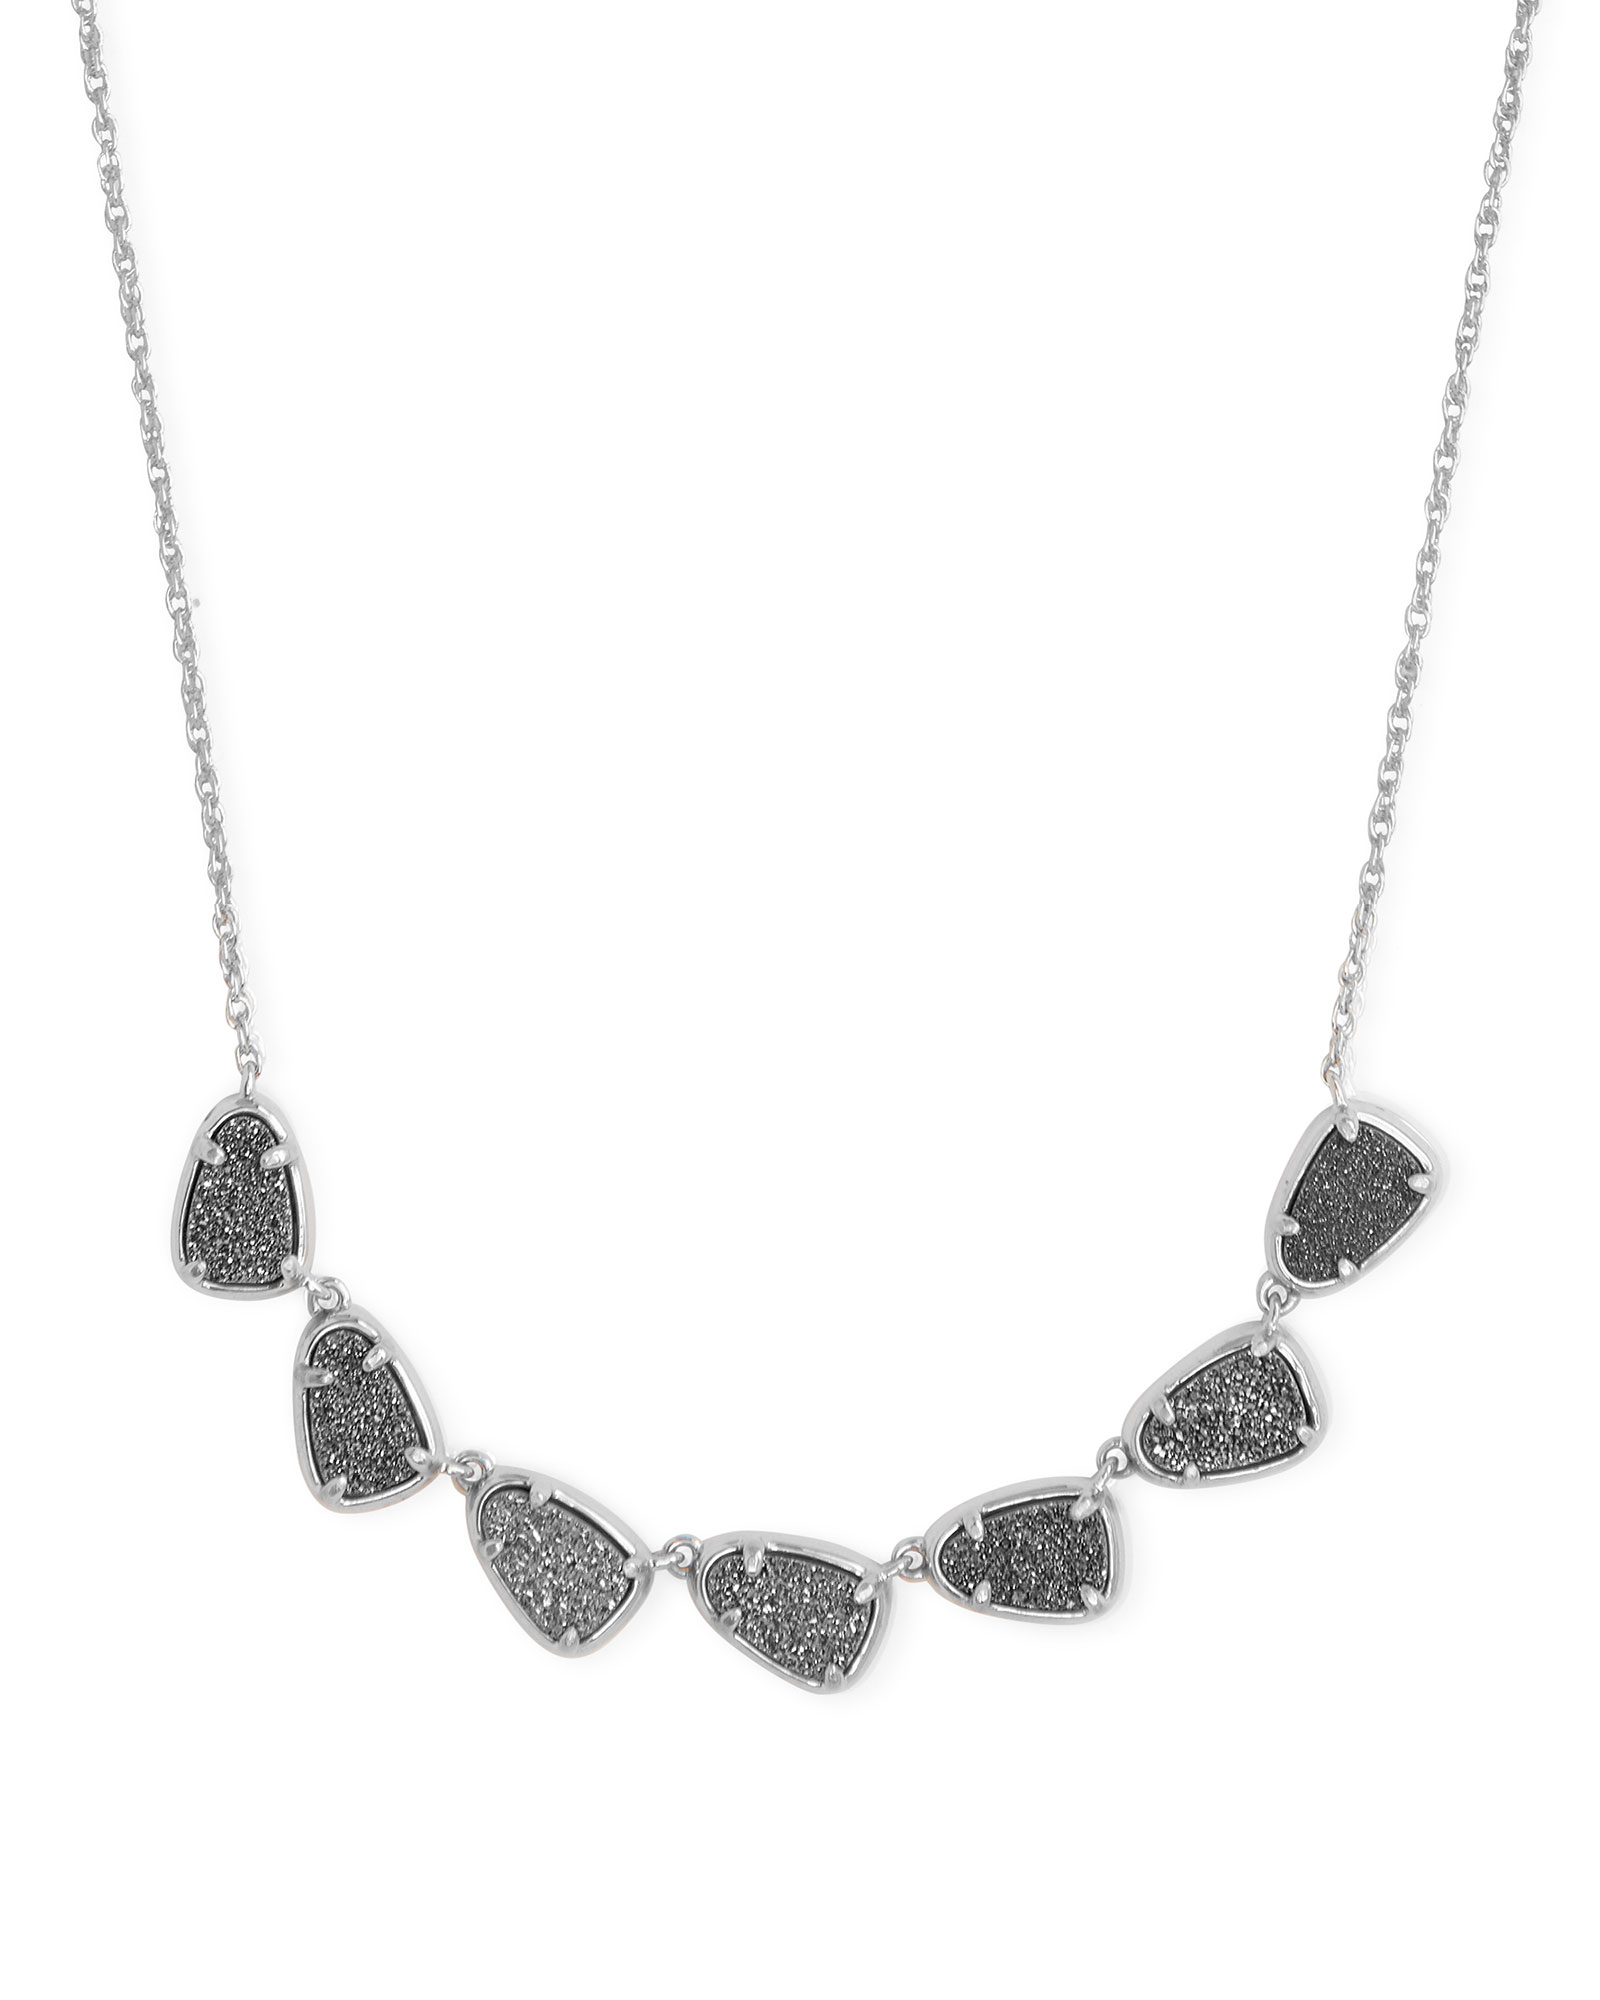 Susanna Silver Collar Necklace in Platinum Drusy